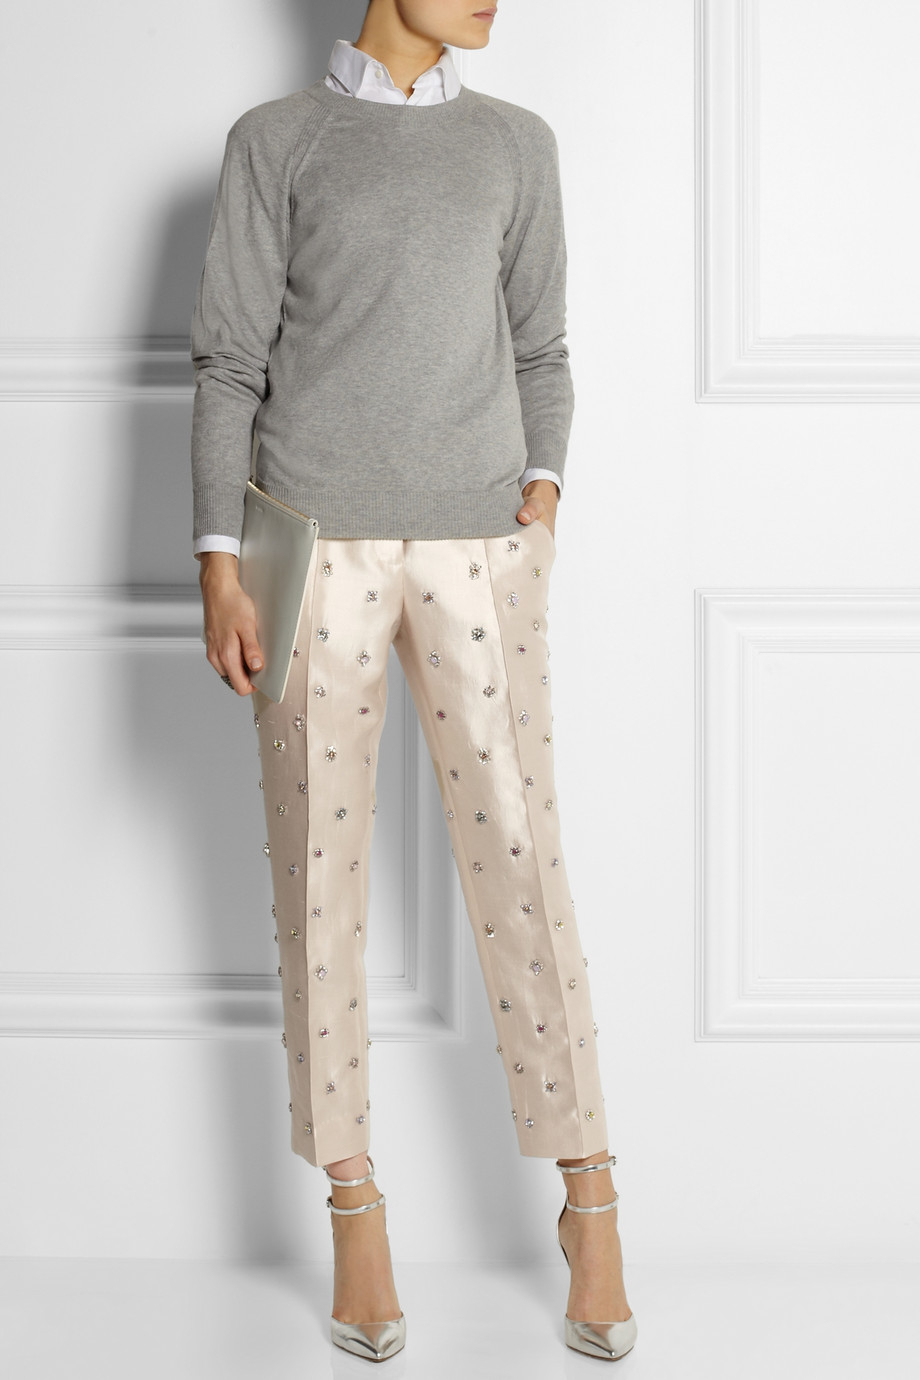 Lyst  Jcrew Collection Embellished Shantung StraightLeg Pants in White